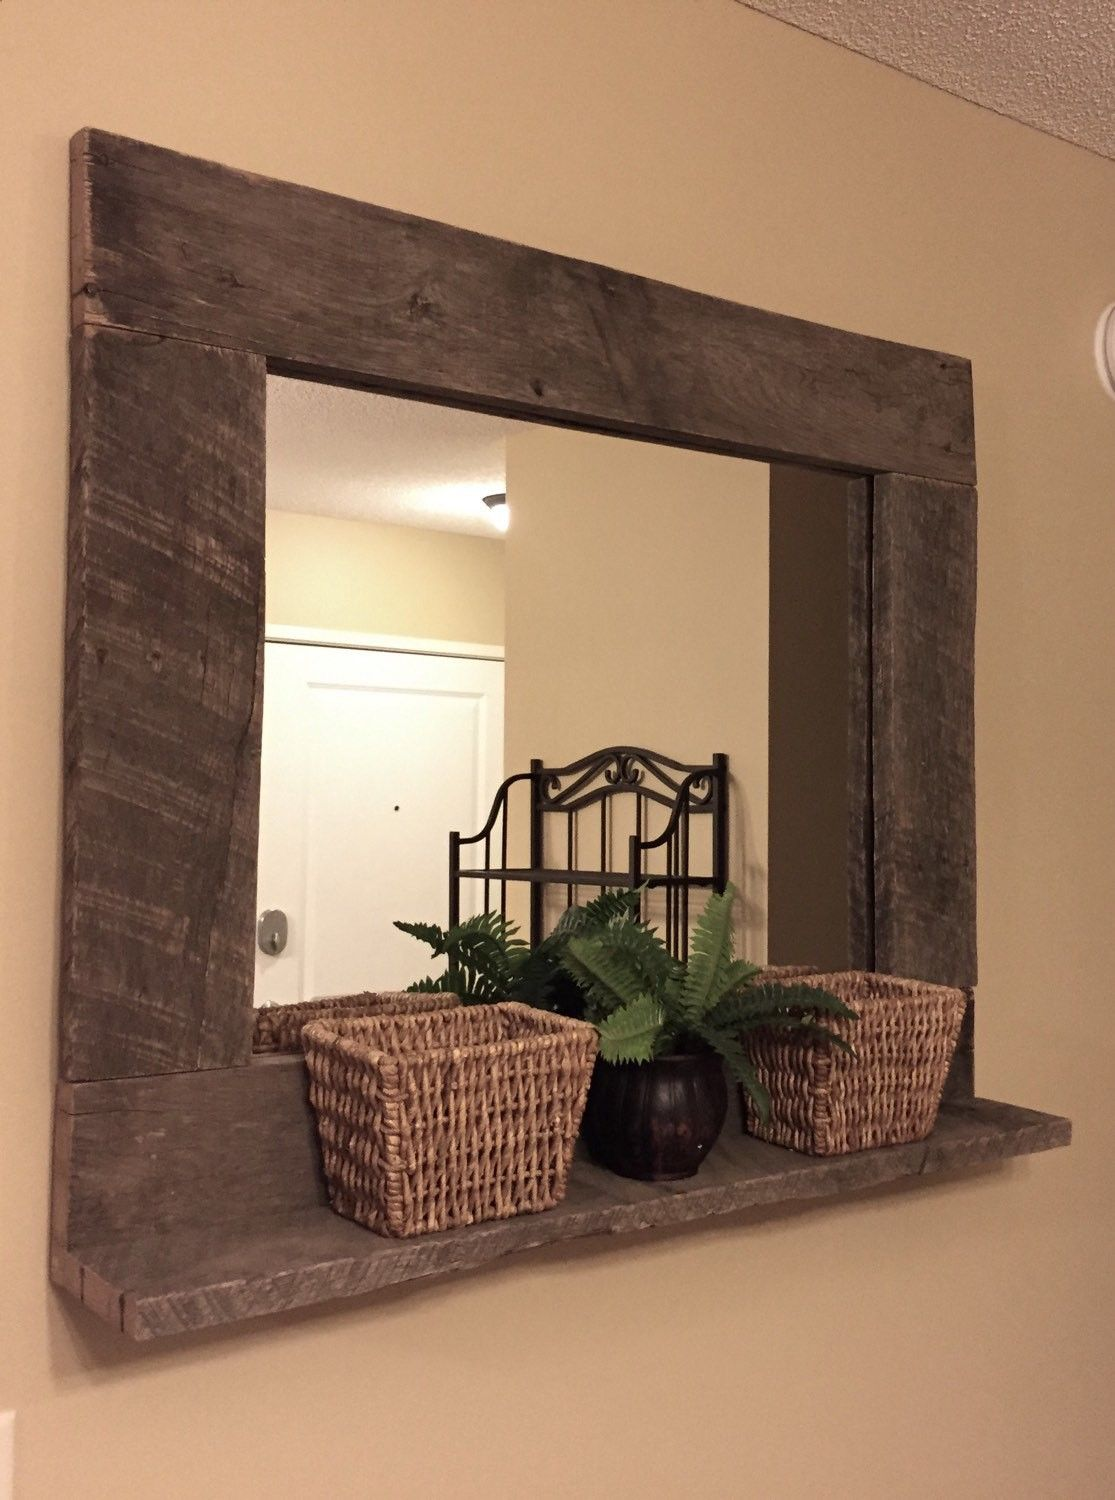 Rustic Wood Mirror Pallet Furniture Rustic Home Decor Large Wall Mirror Hanging Mirror With Shelf By Bandvrusticdes Rustic Furniture Diy Pallet Furniture Decor